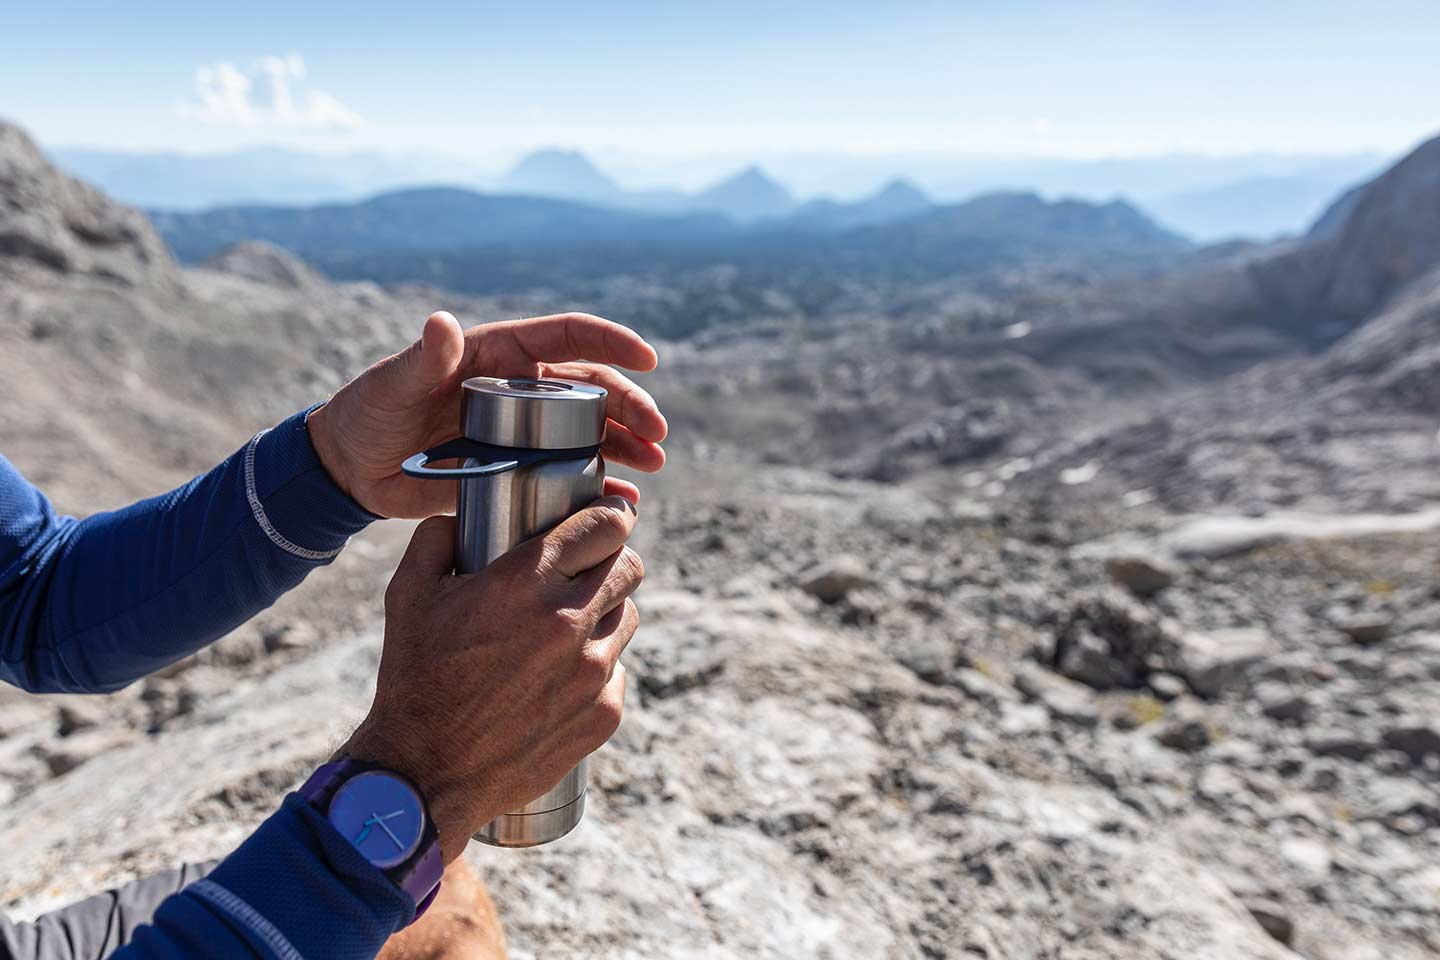 A person screws the lid off of a metal water bottle out in a rocky and rugged landscape.